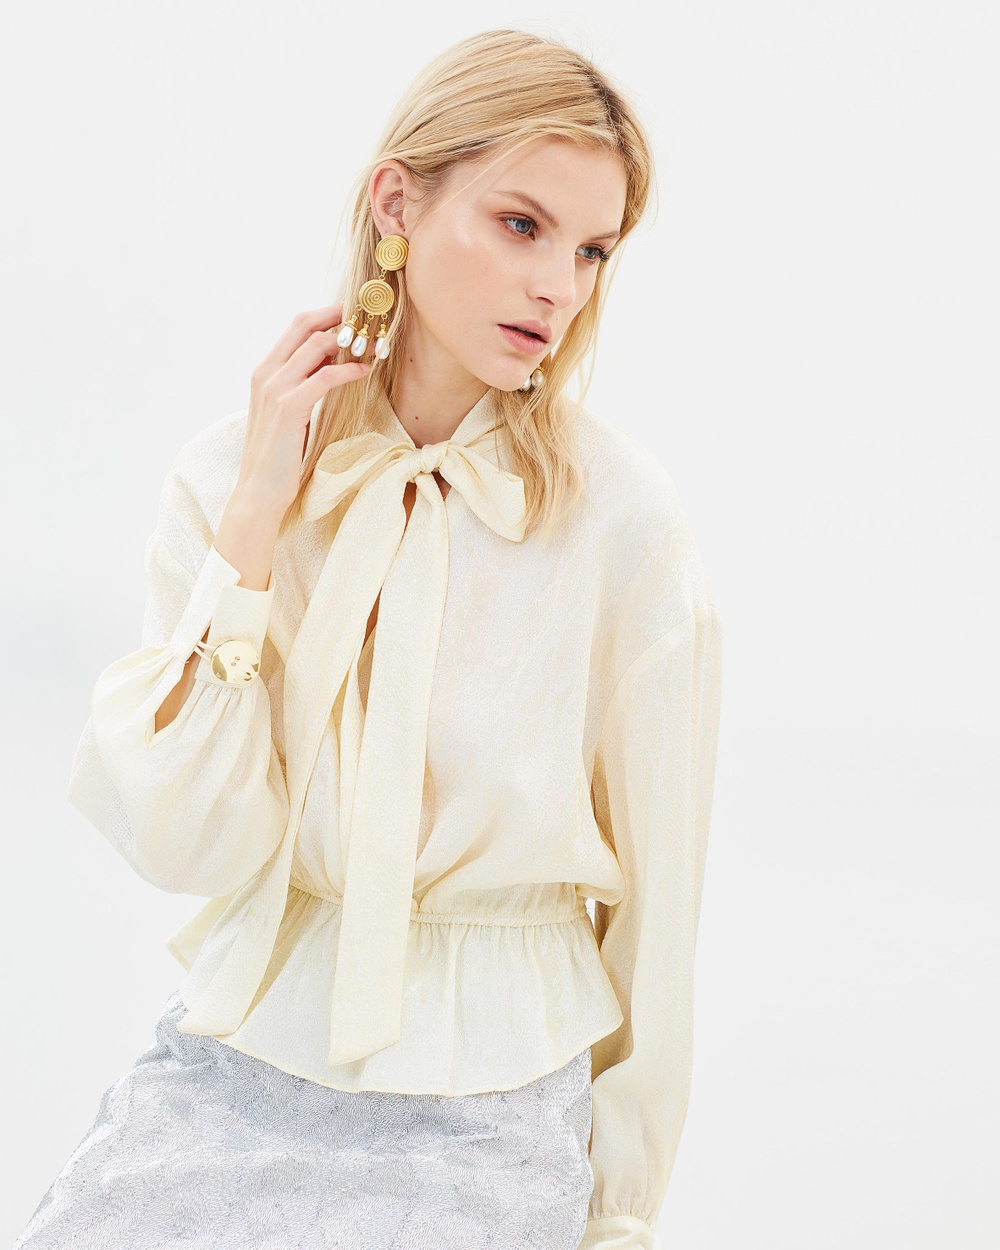 Manning Cartell Up Scale Blouse Tops Vanilla Up Scale Blouse